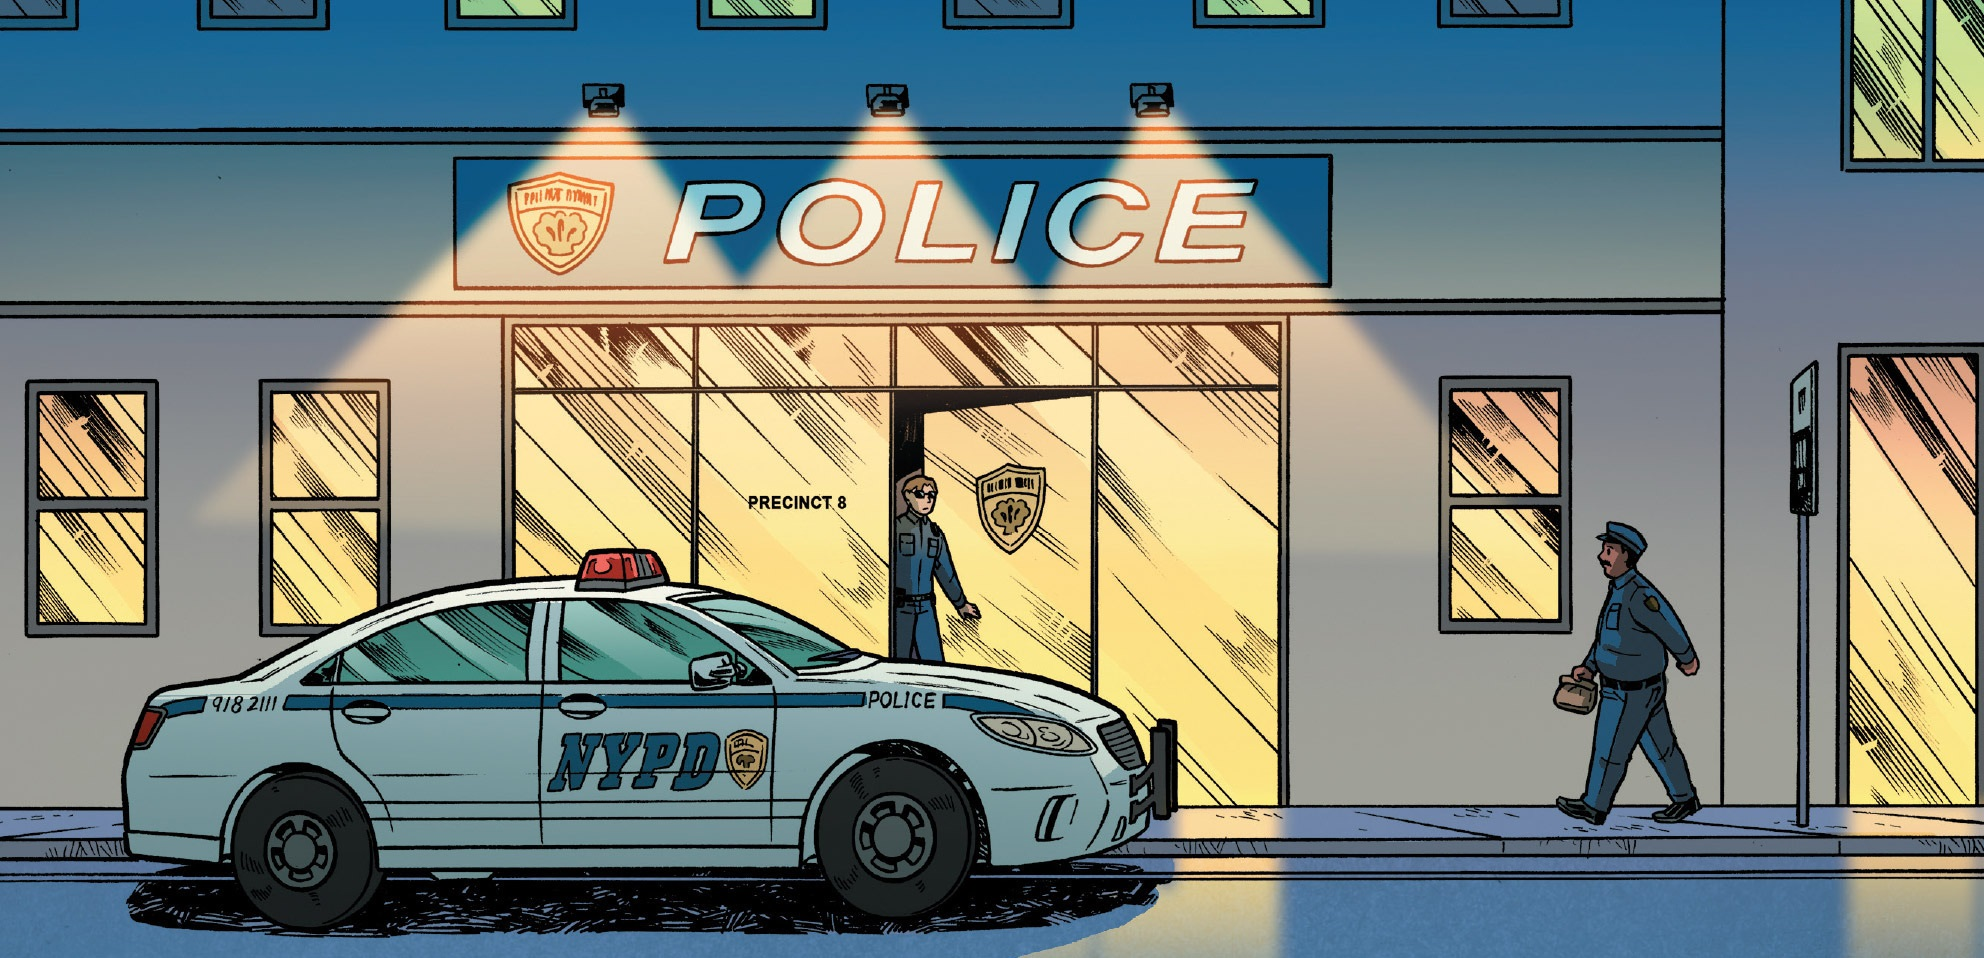 New York City Police Department (Earth-616)/Gallery